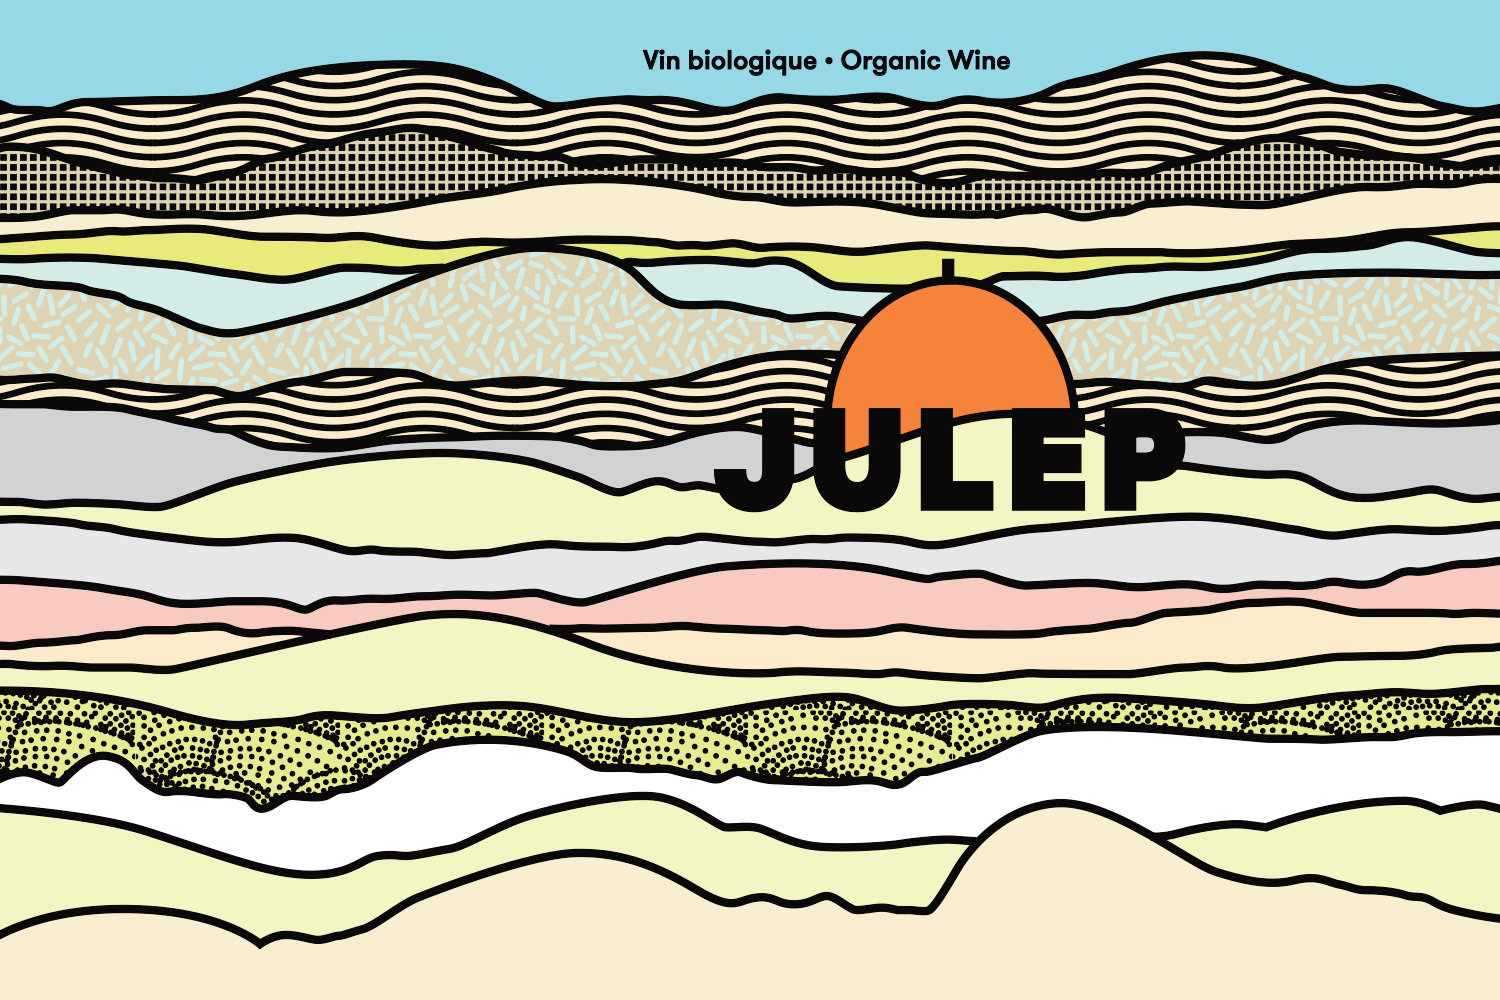 julep_illustration